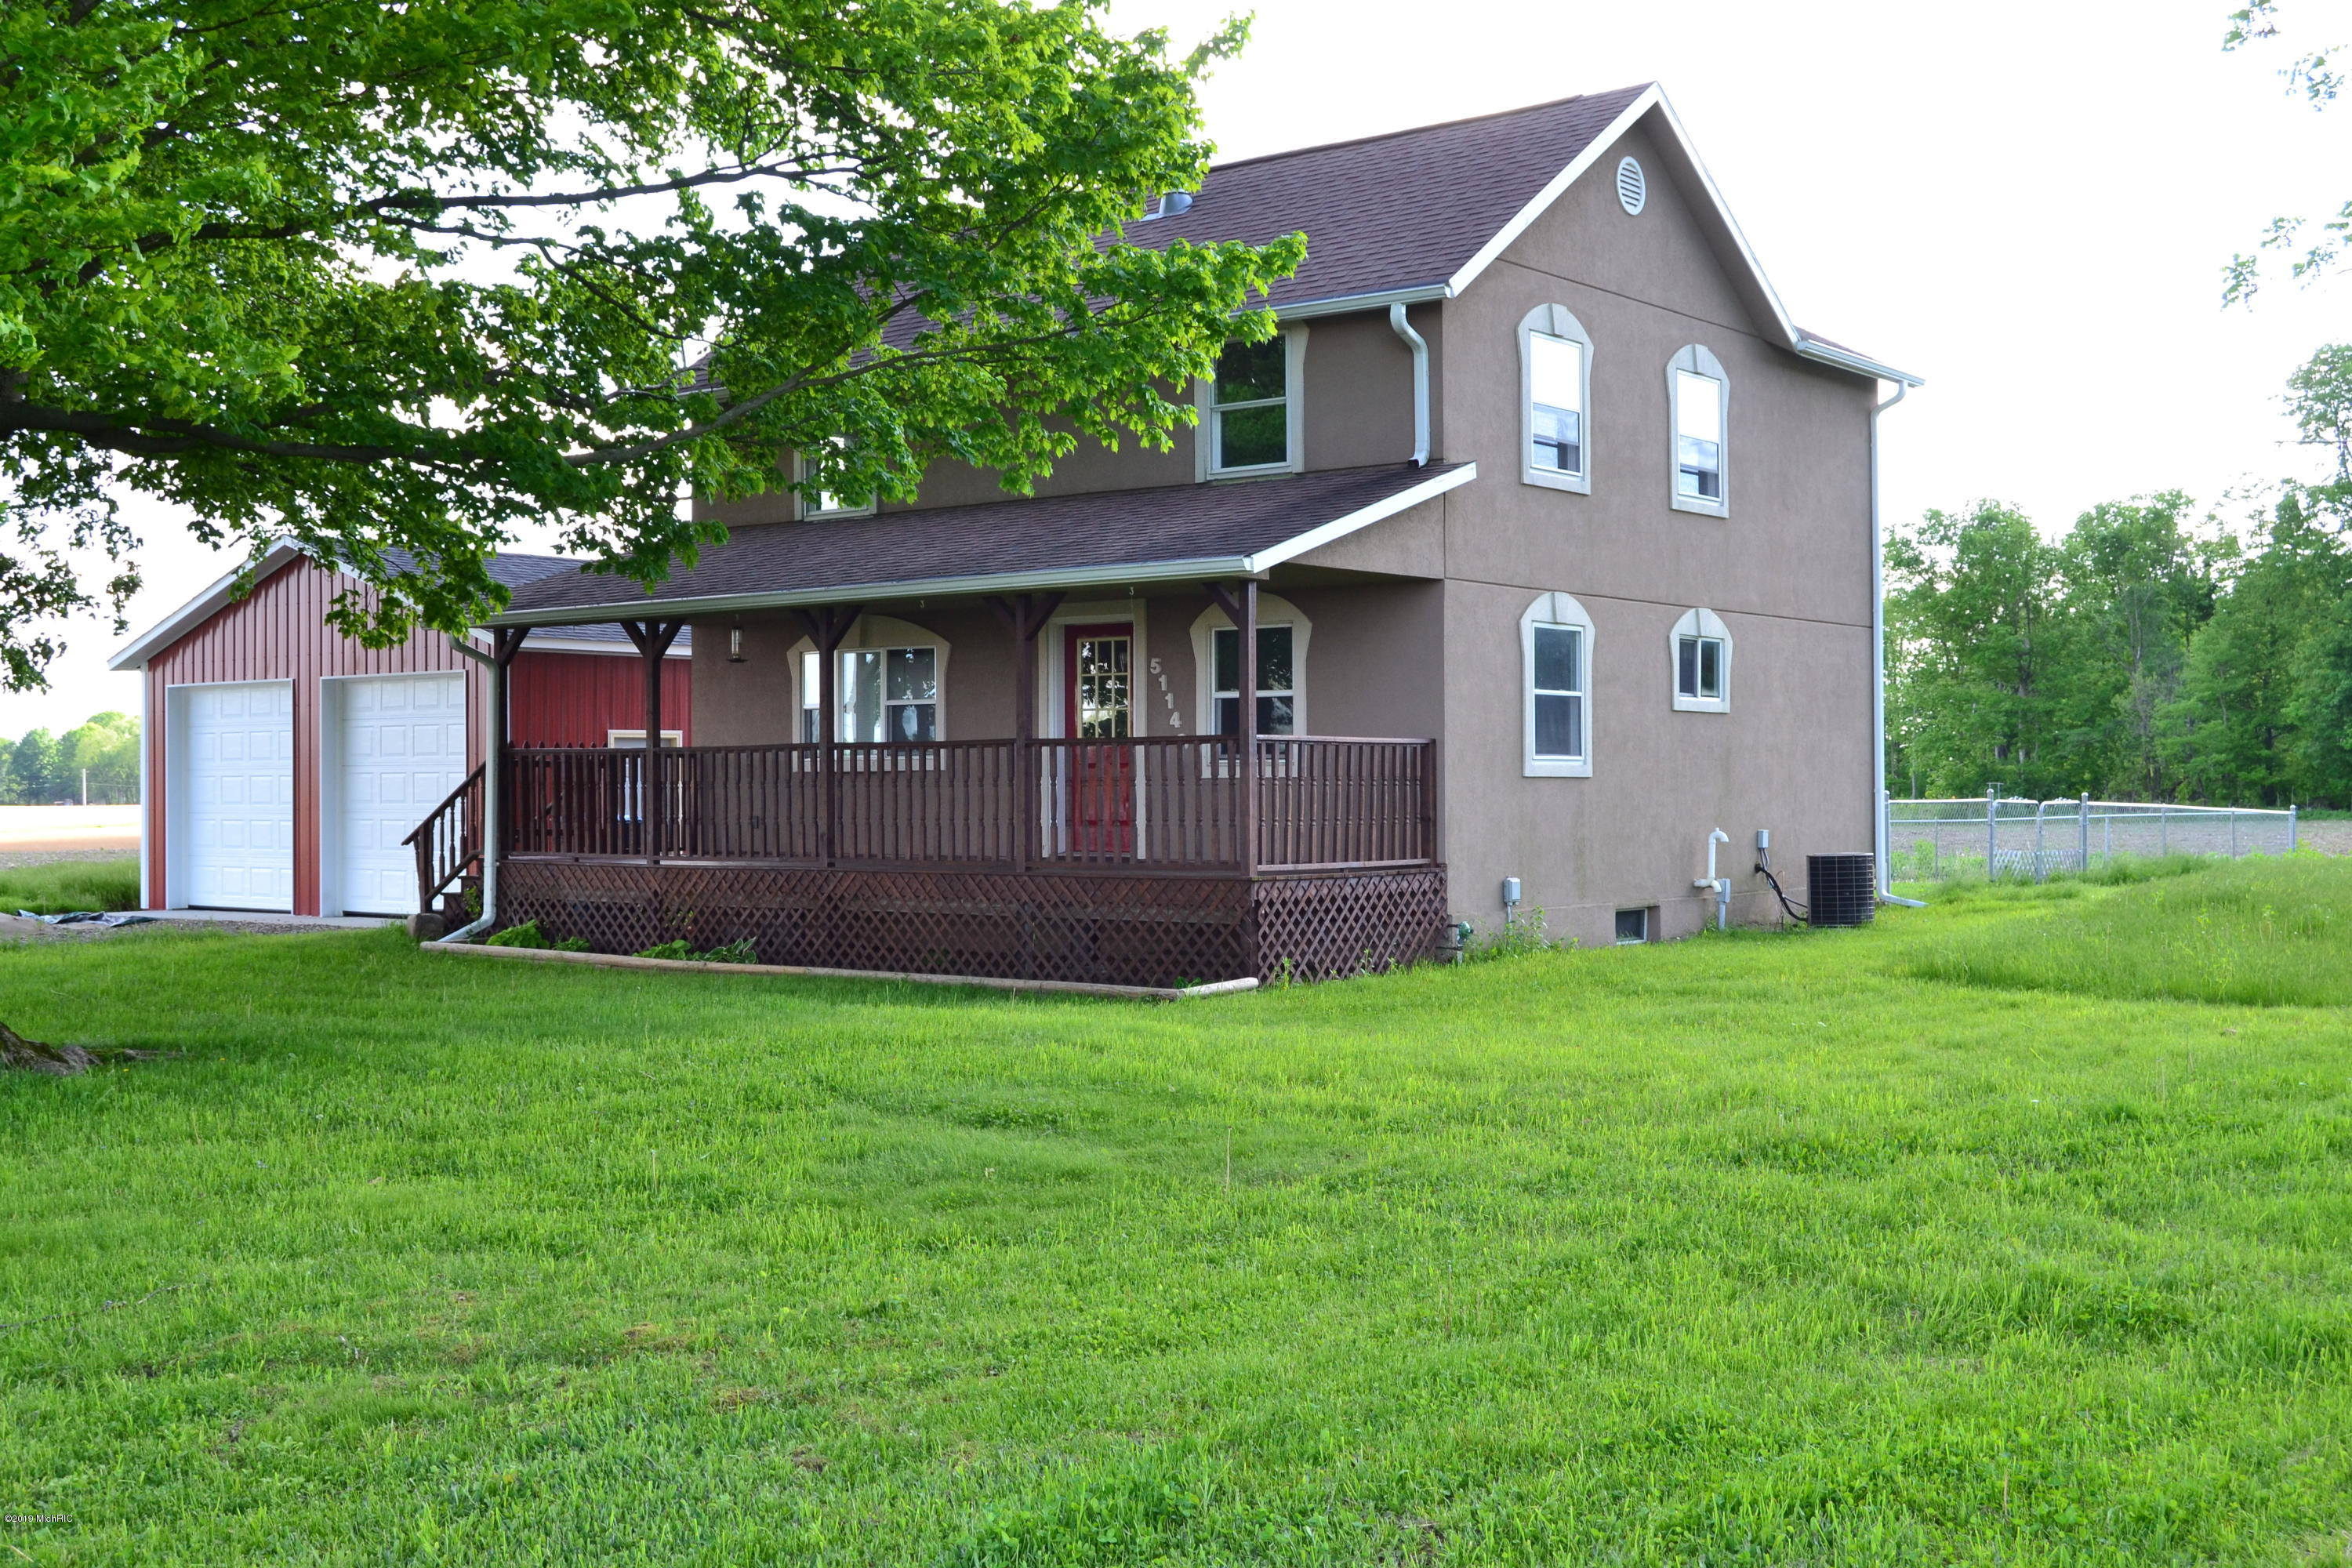 Photo for 51148 Lawrence Road, Decatur, MI 49045 (MLS # 19006741)